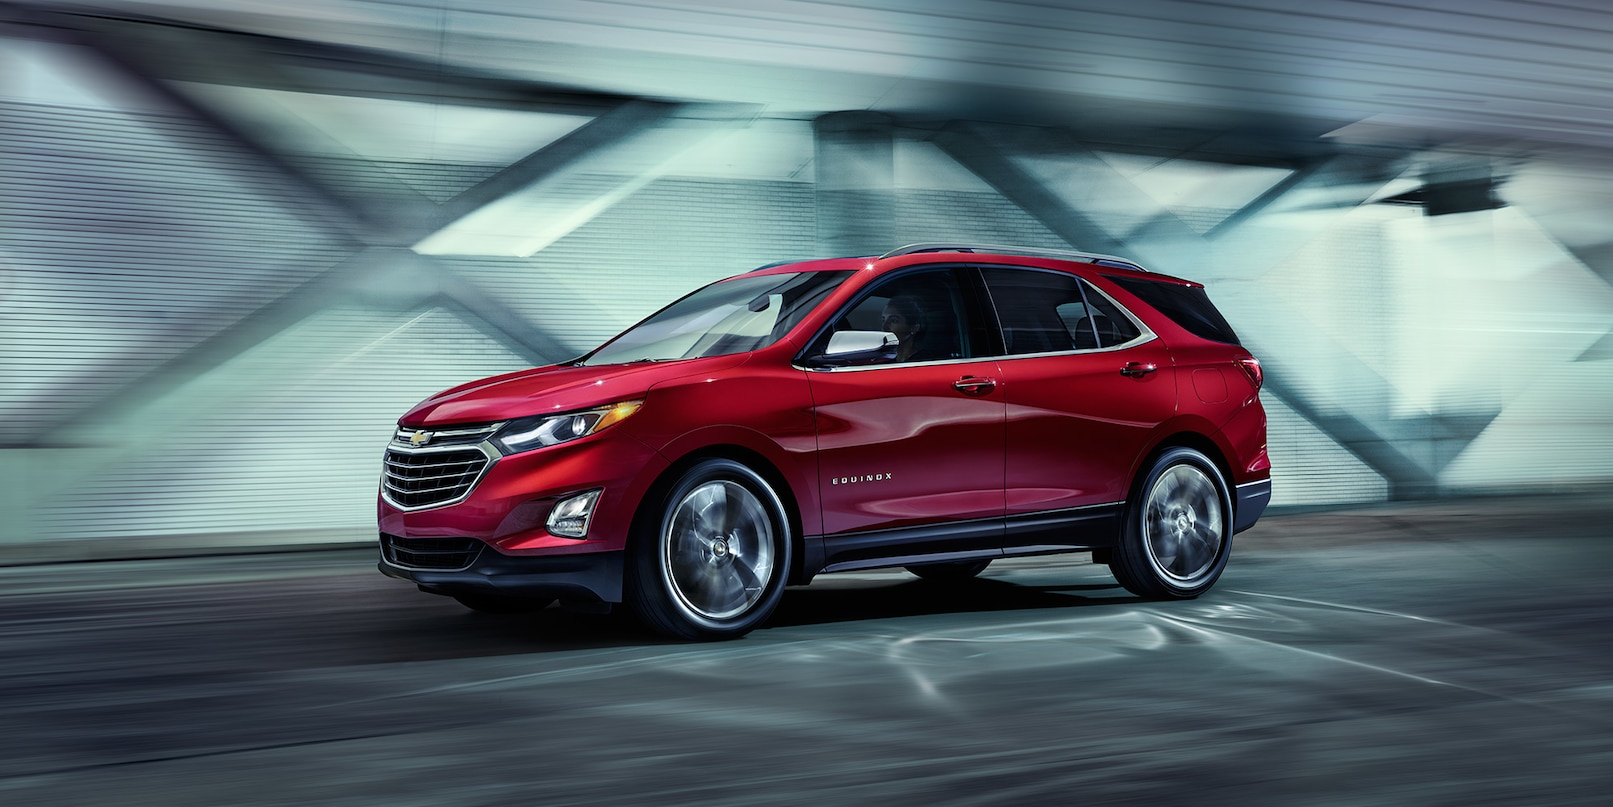 2019 Chevrolet Equinox for Sale near Worthington, MN